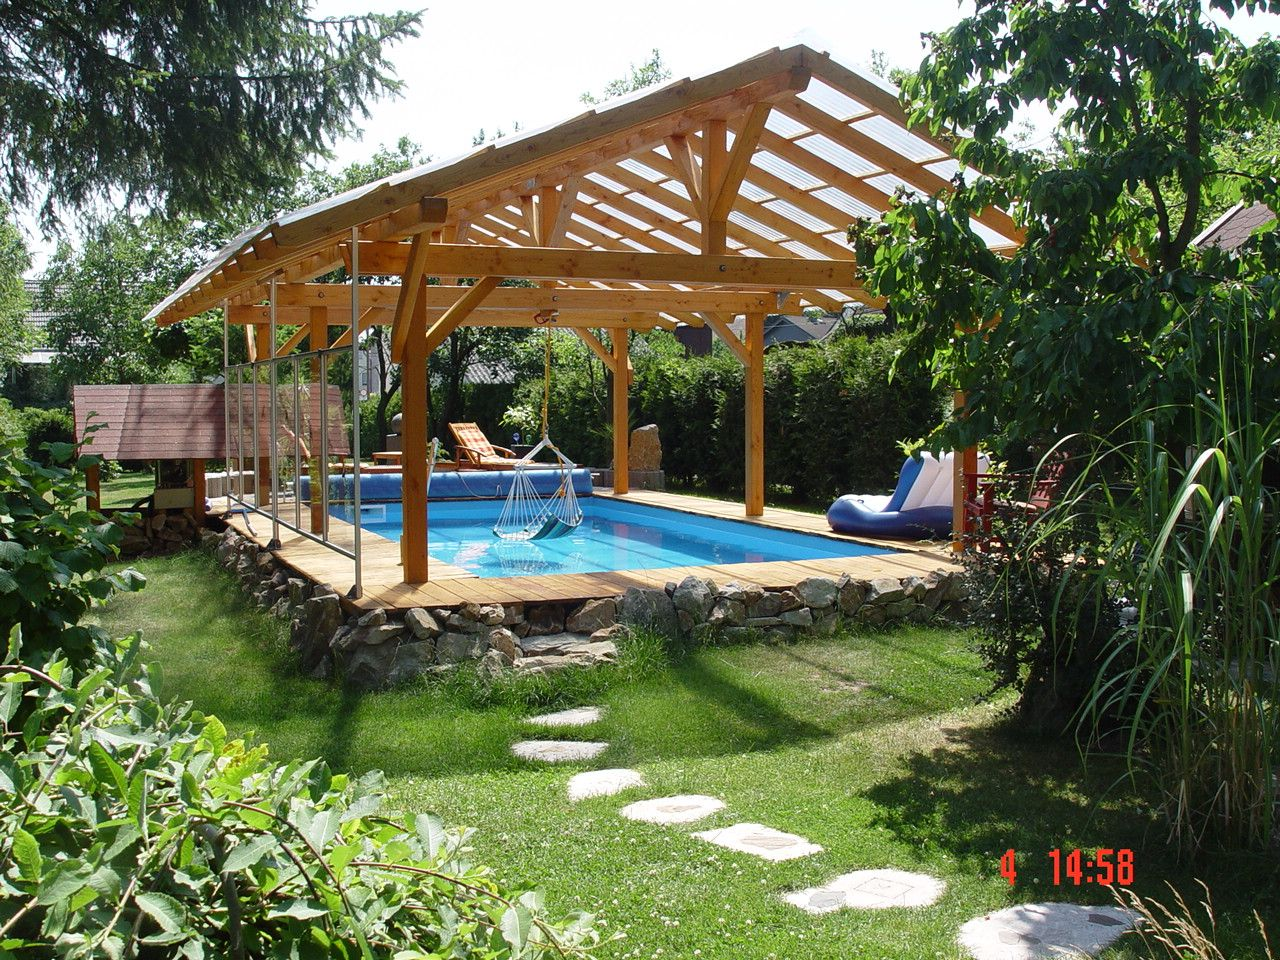 Poolabdeckung Holz Kosten Pool Mauern Das Resultat Teich And Pool Pinterest